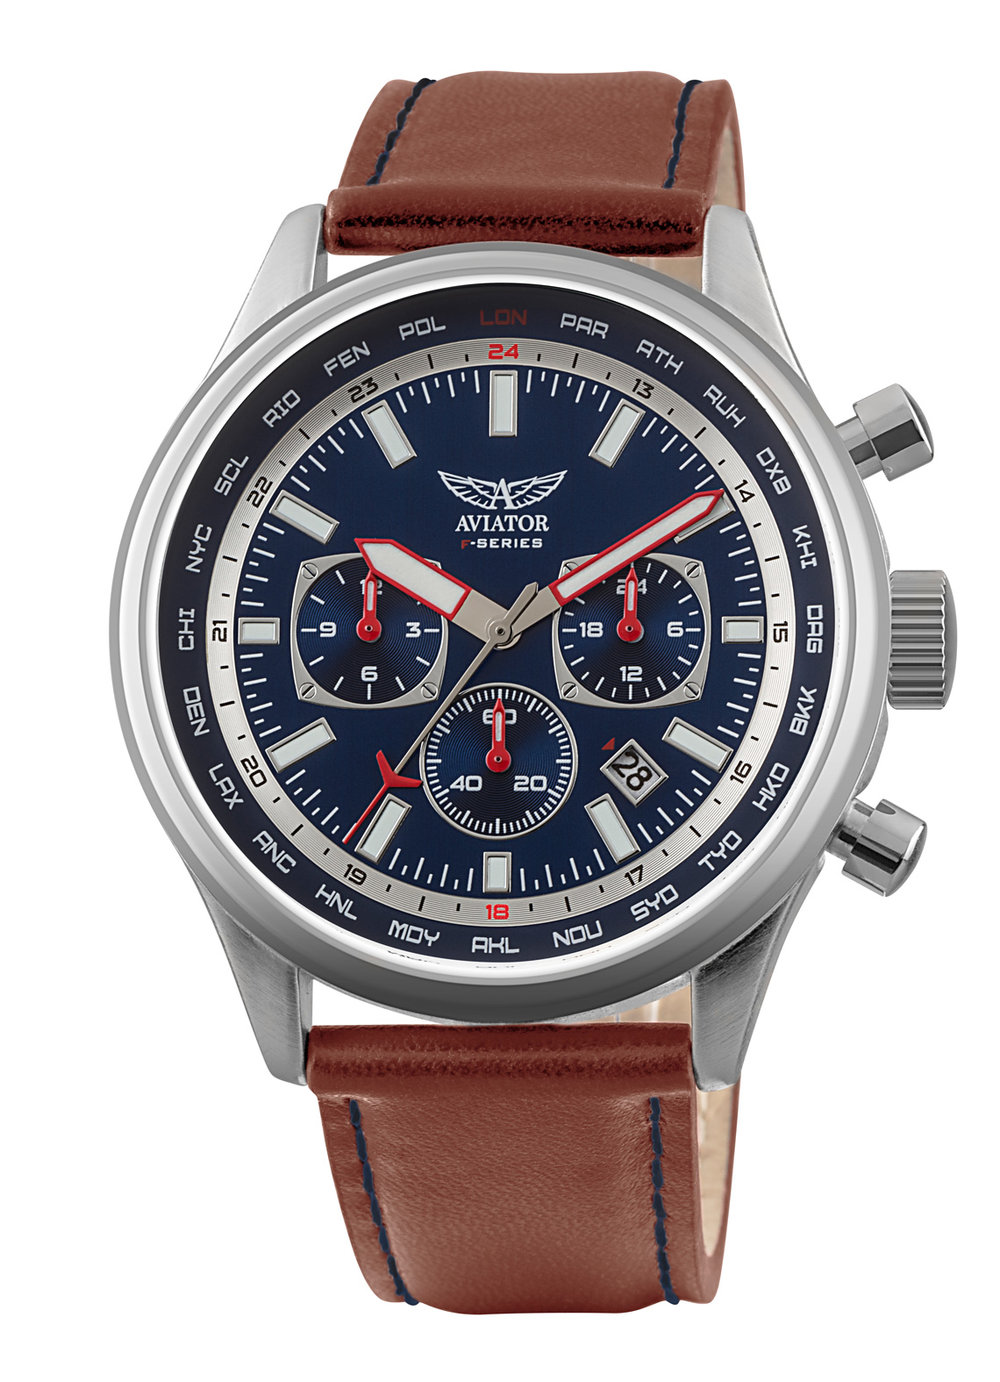 Classically styled with a double layer cream dial, 2-step chronograph, 12/24hr indicator, luminous hands and calendar. The stainless steel case has a 44mm diameter and is fitted with a high quality brown leather strap. Water resistant to 10ATM. Two year international warranty.